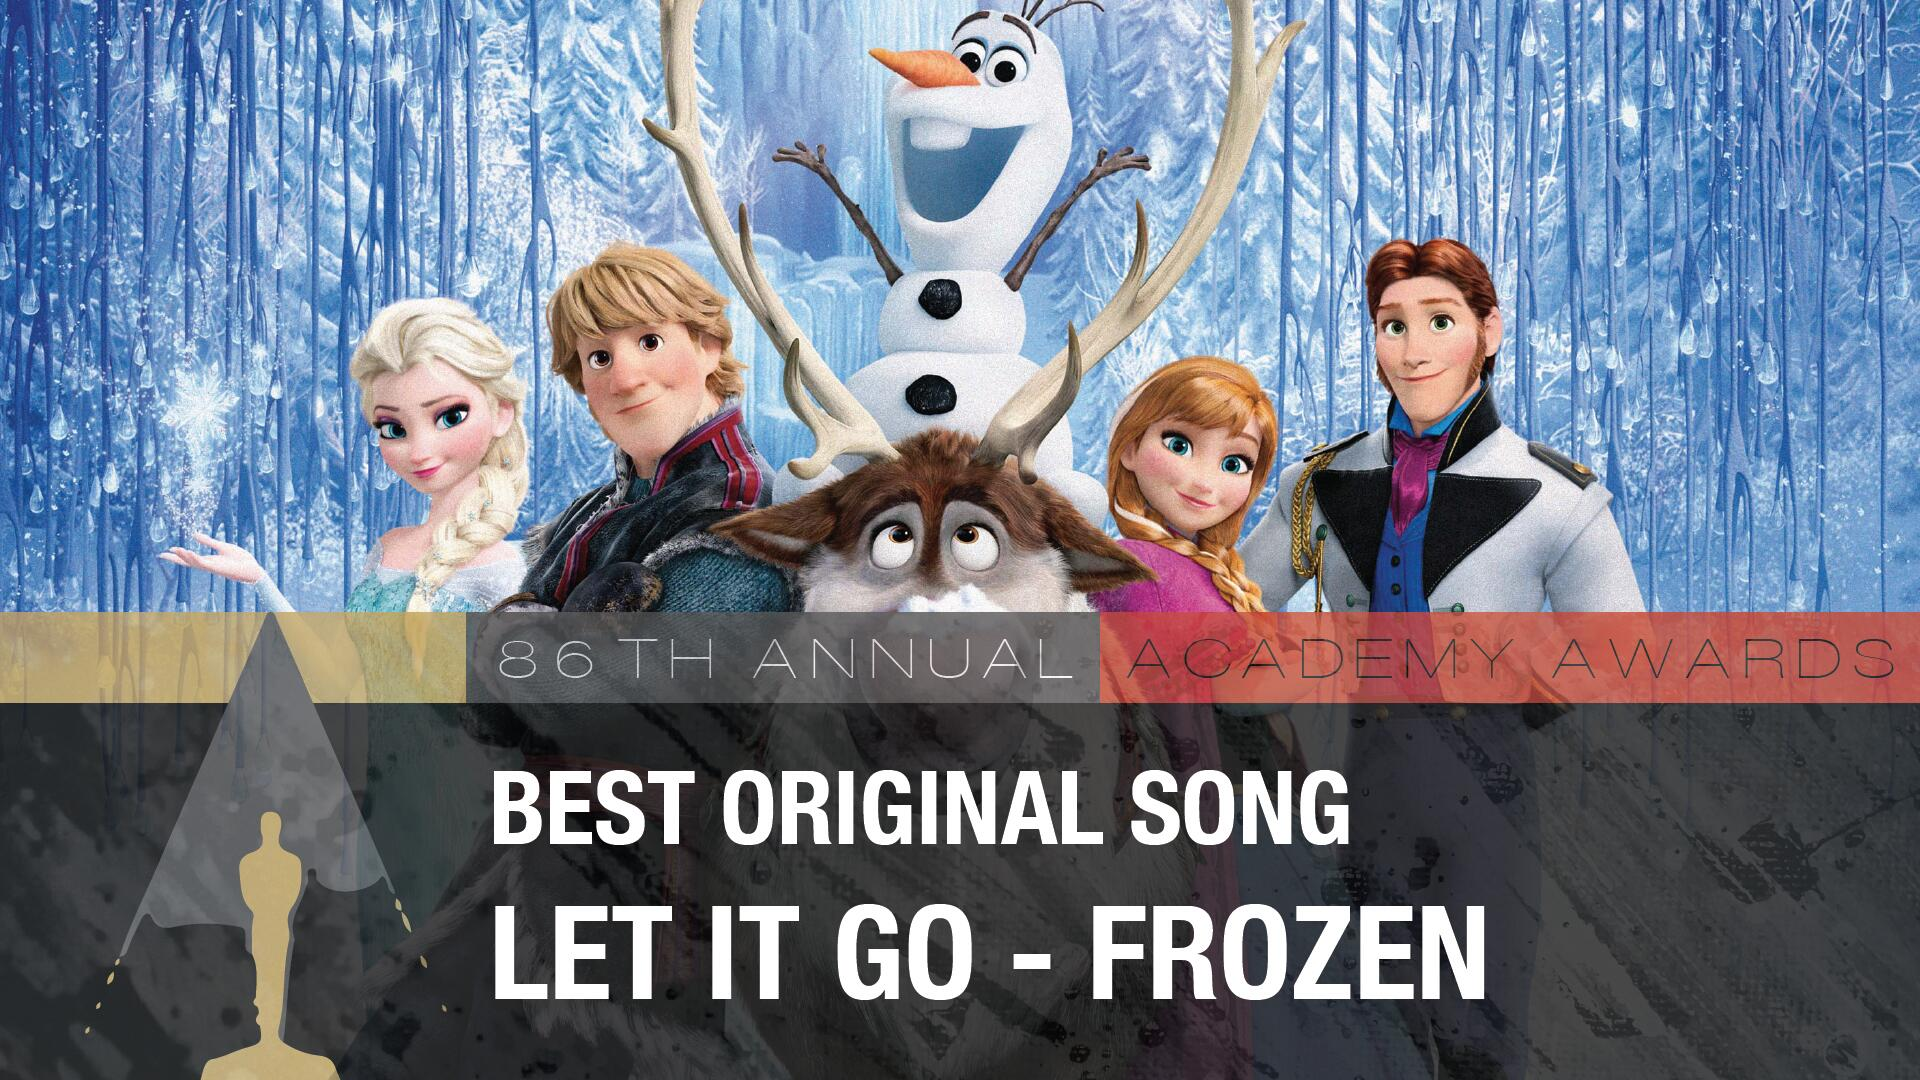 And the #Oscar for Best Original Song goes to ... 'Let It Go' - Frozen! (You totally called that, didn't you?) http://t.co/O2GgX8ZA7K